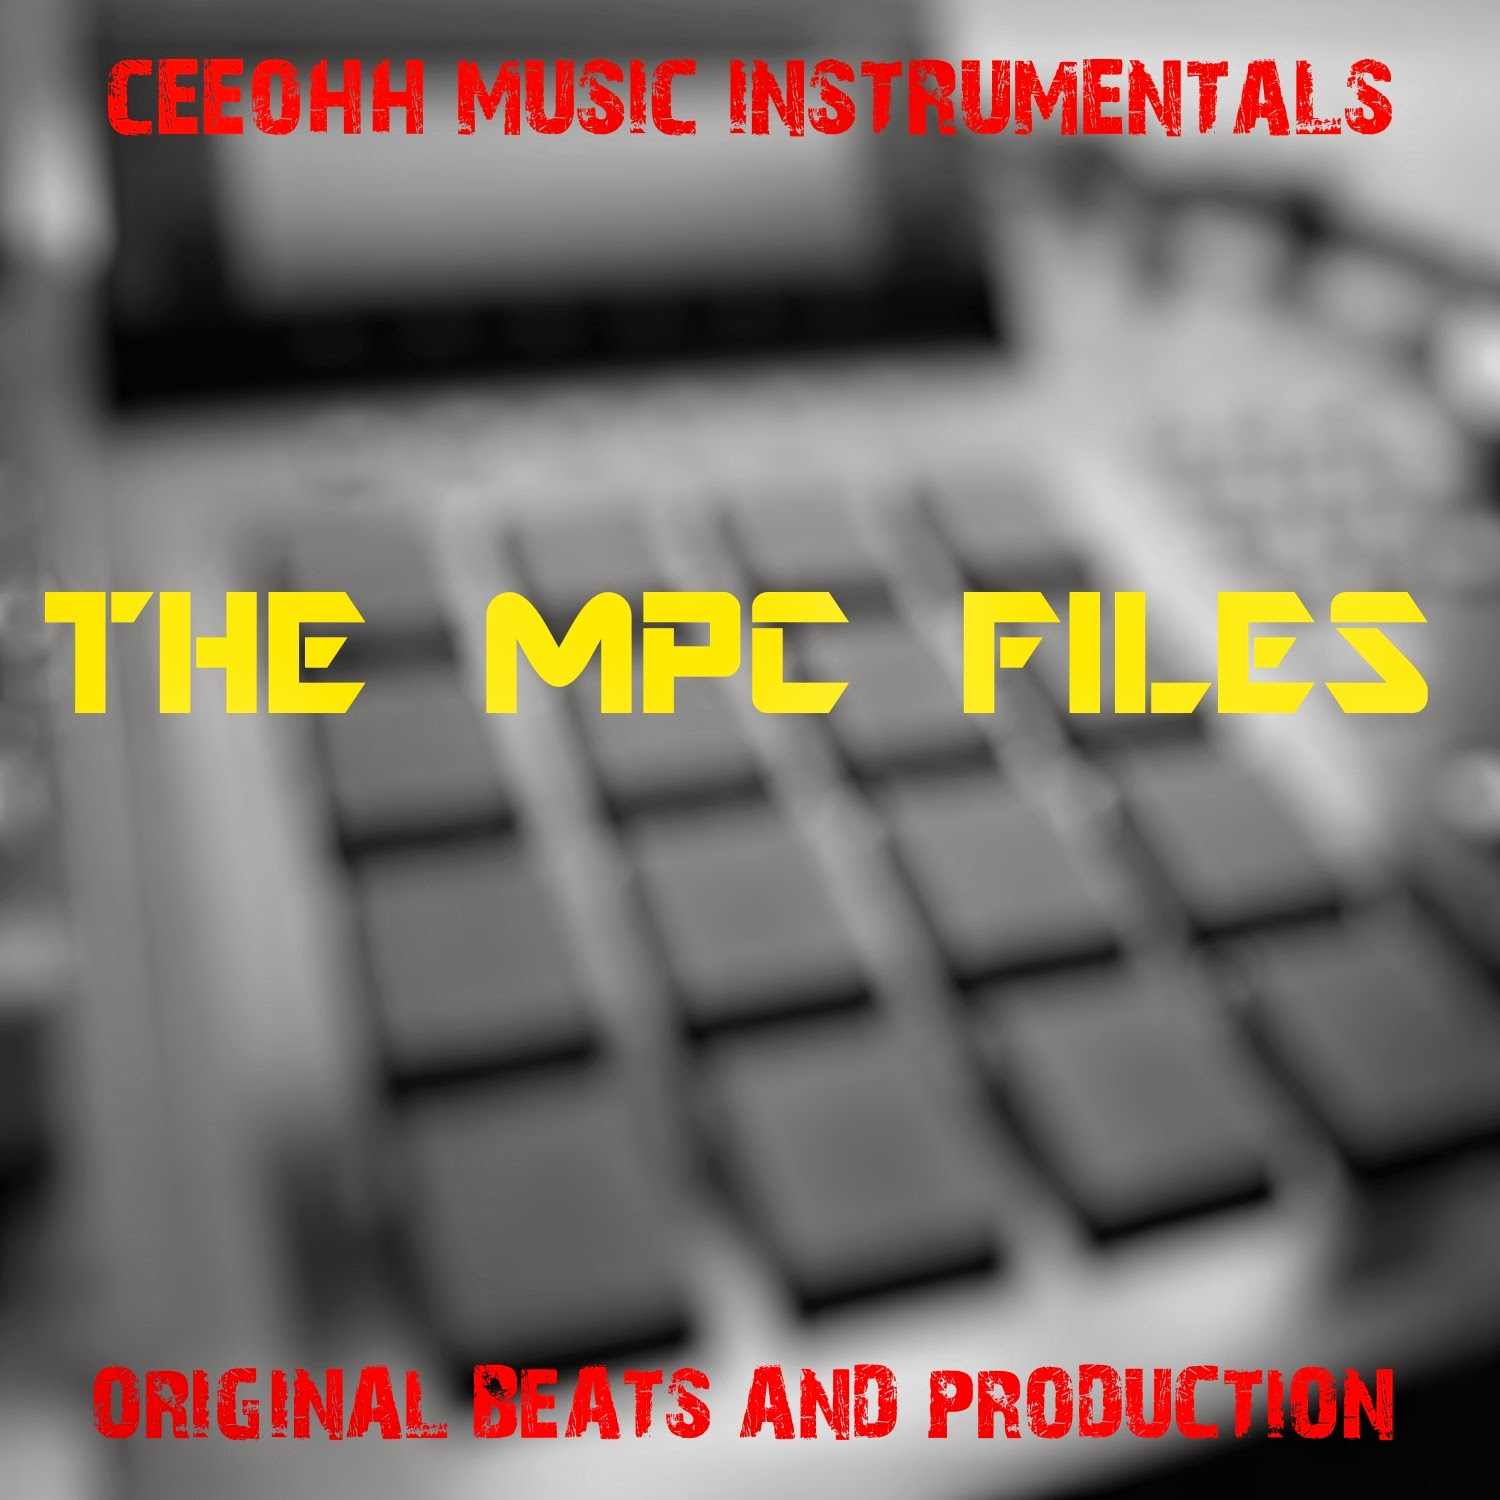 CEEOHH MUSIC INSTRUMENTALS | THE MPC FILES